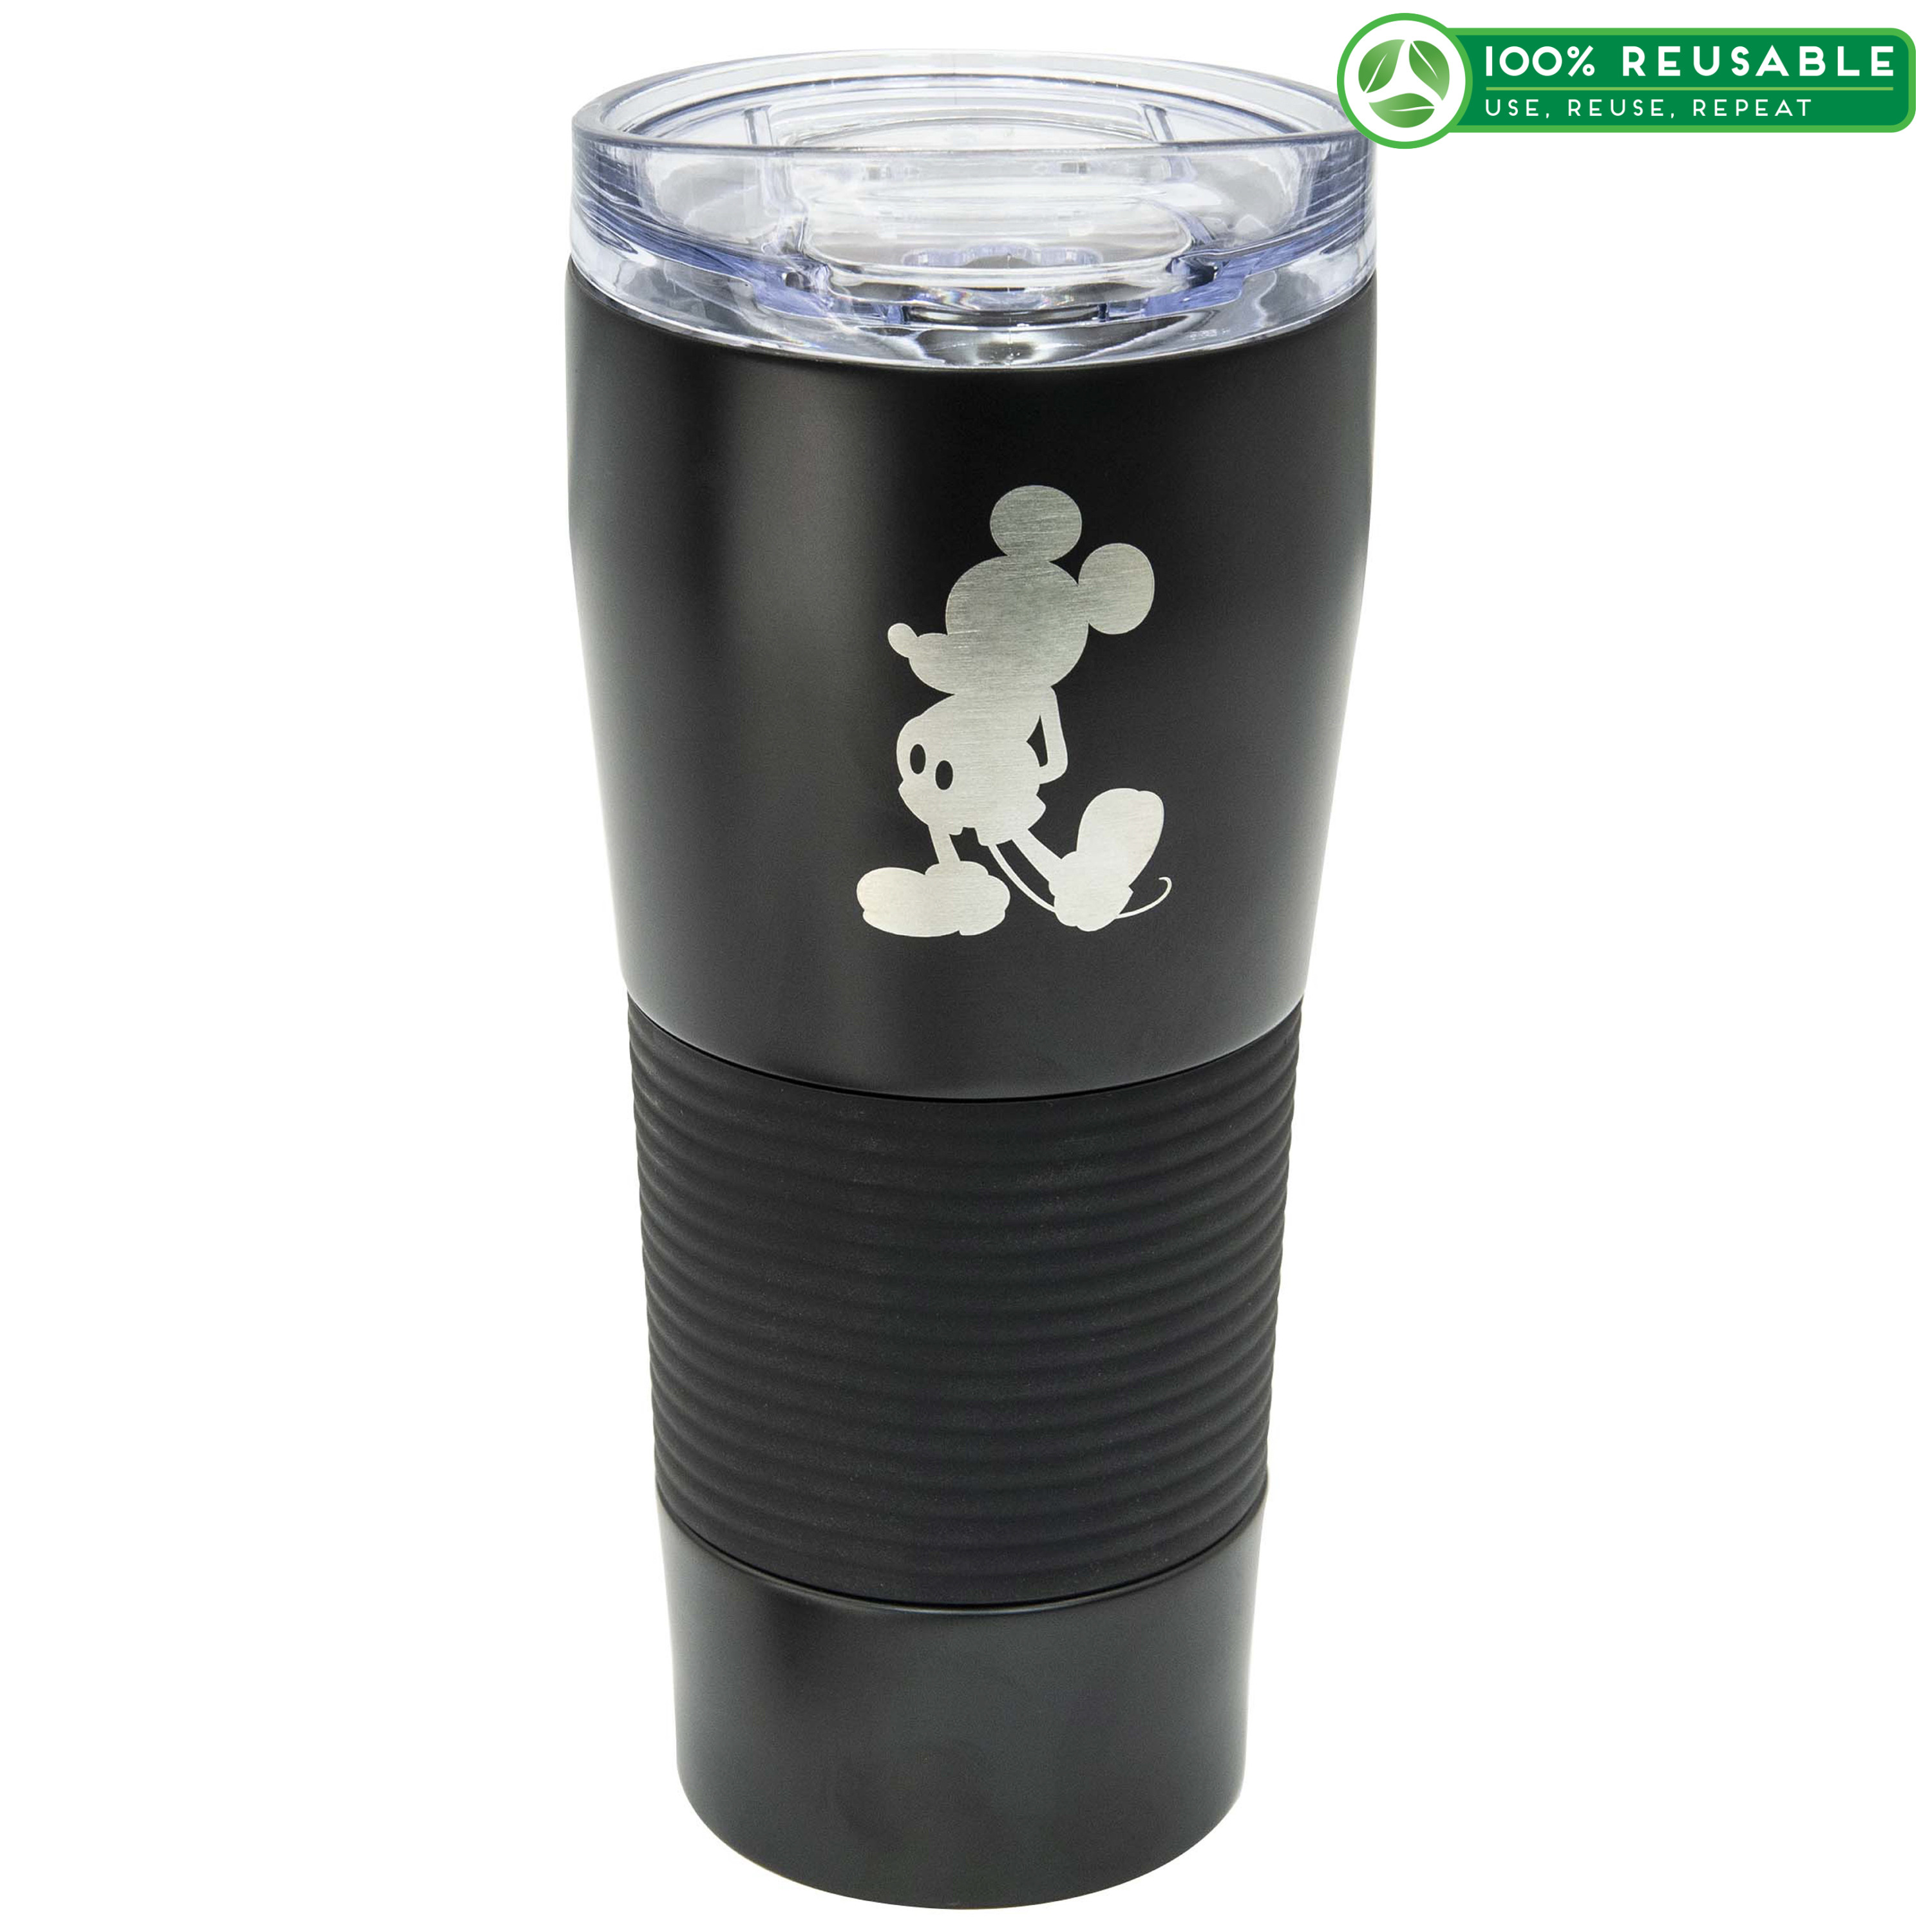 Disney 28 ounce Vacuum Insulated Stainless Steel Tumbler, Mickey Mouse slideshow image 1